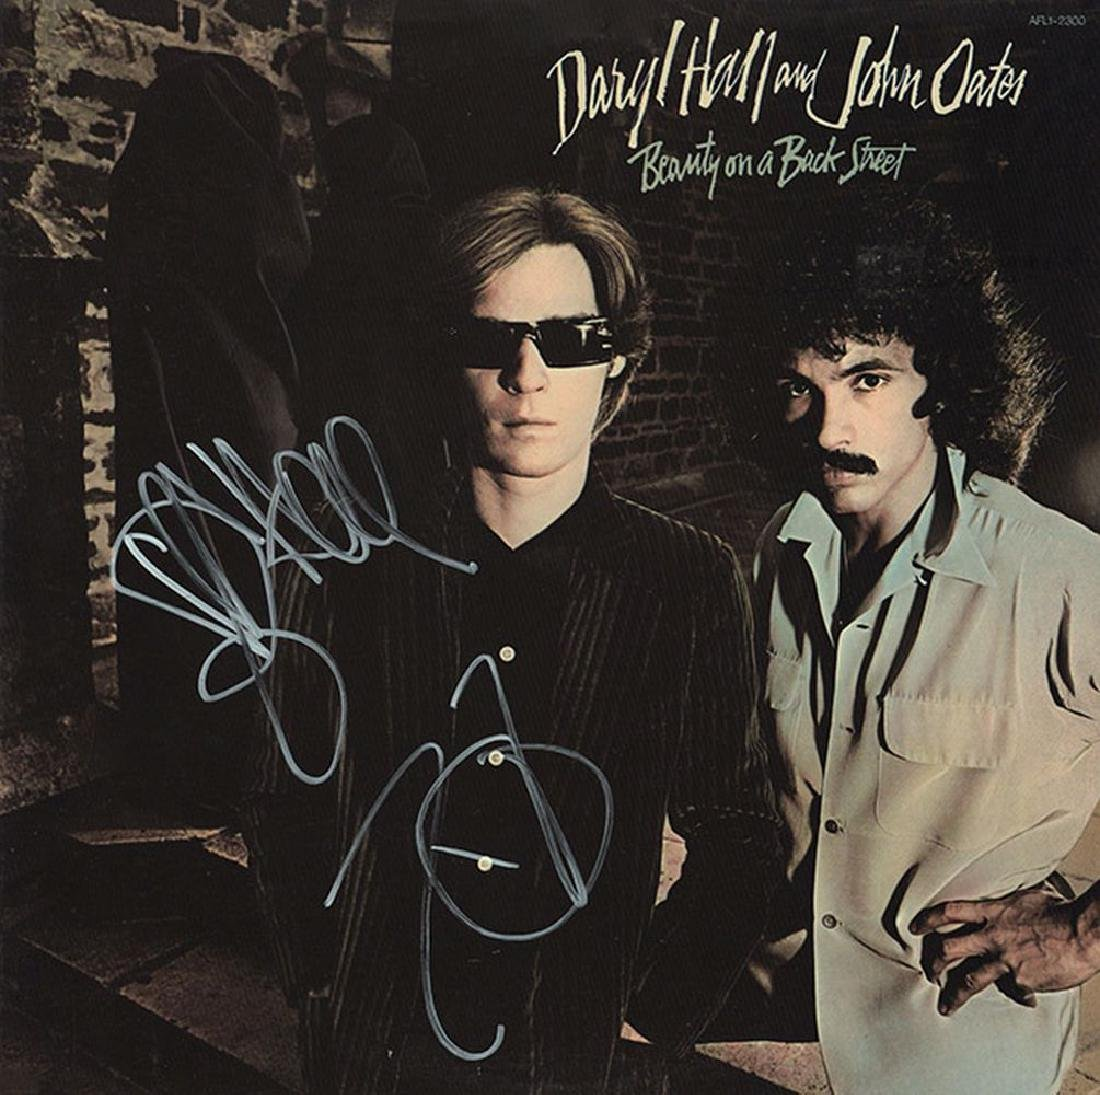 Hall & Oates Signed Beauty On A Back Street Album